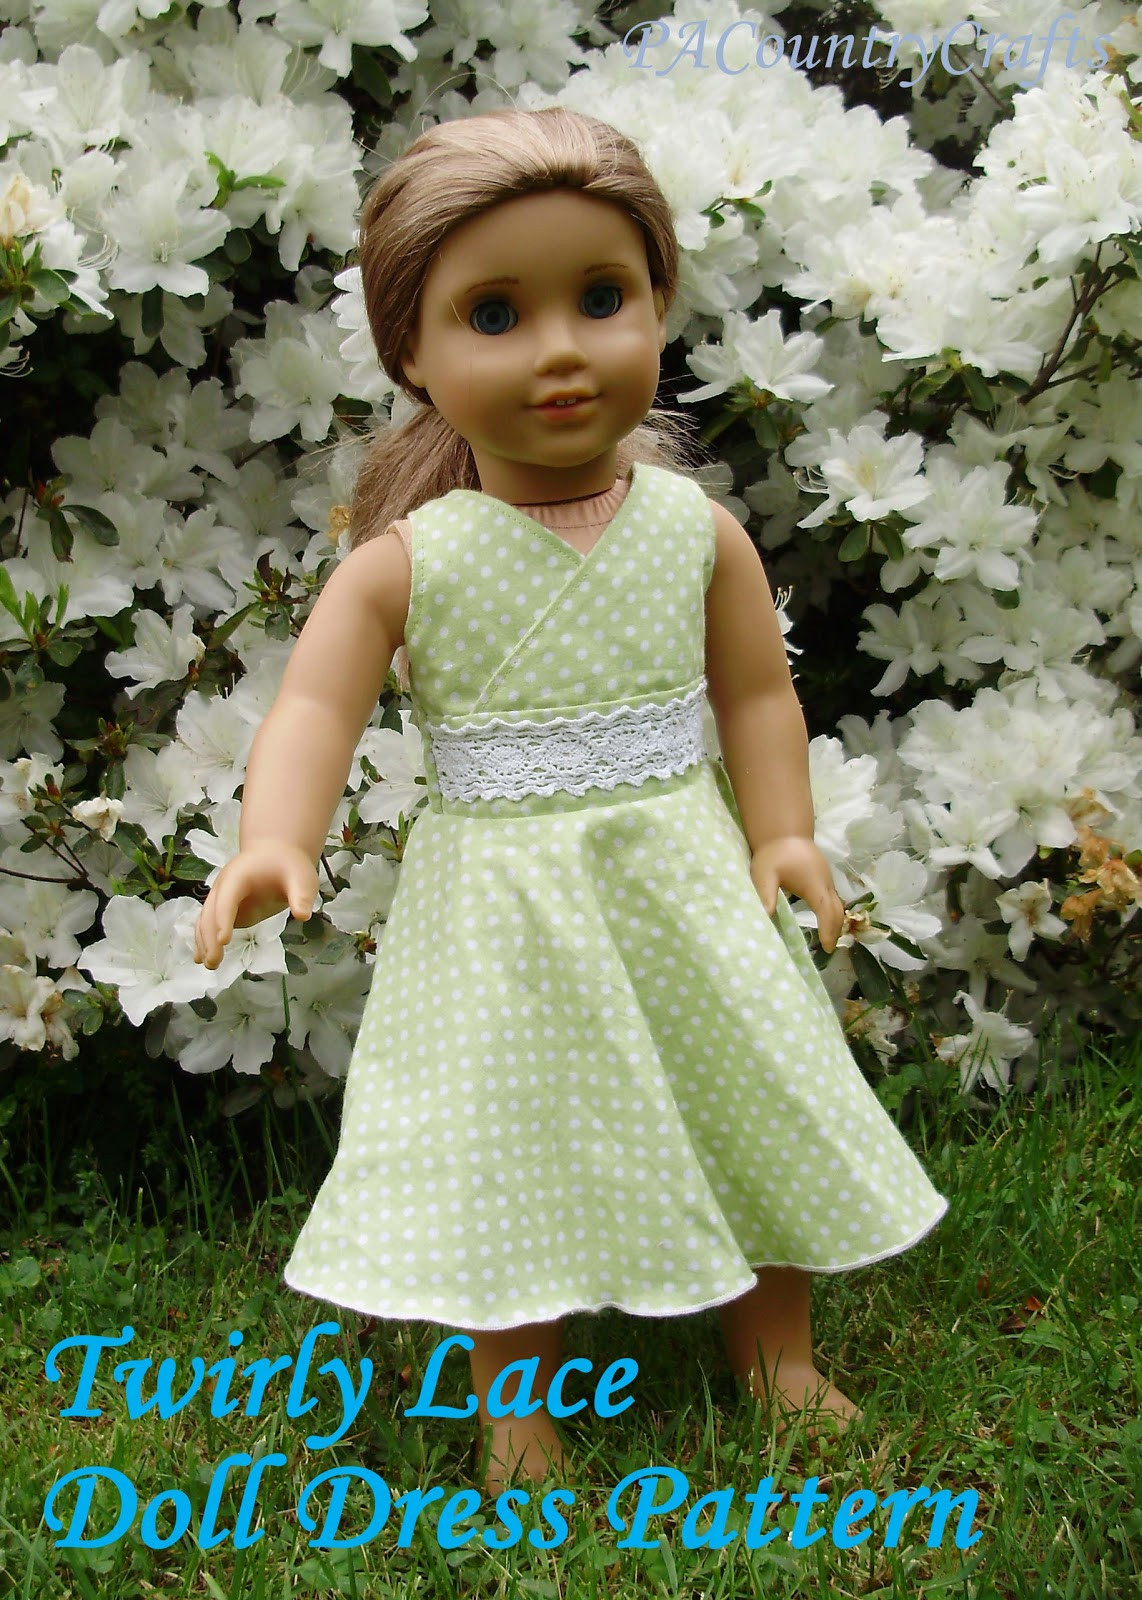 Doll Patterns Unique Twirly Lace Doll Dress Pattern Of Doll Patterns Best Of My Rag Doll Adorable Dolls to Sew